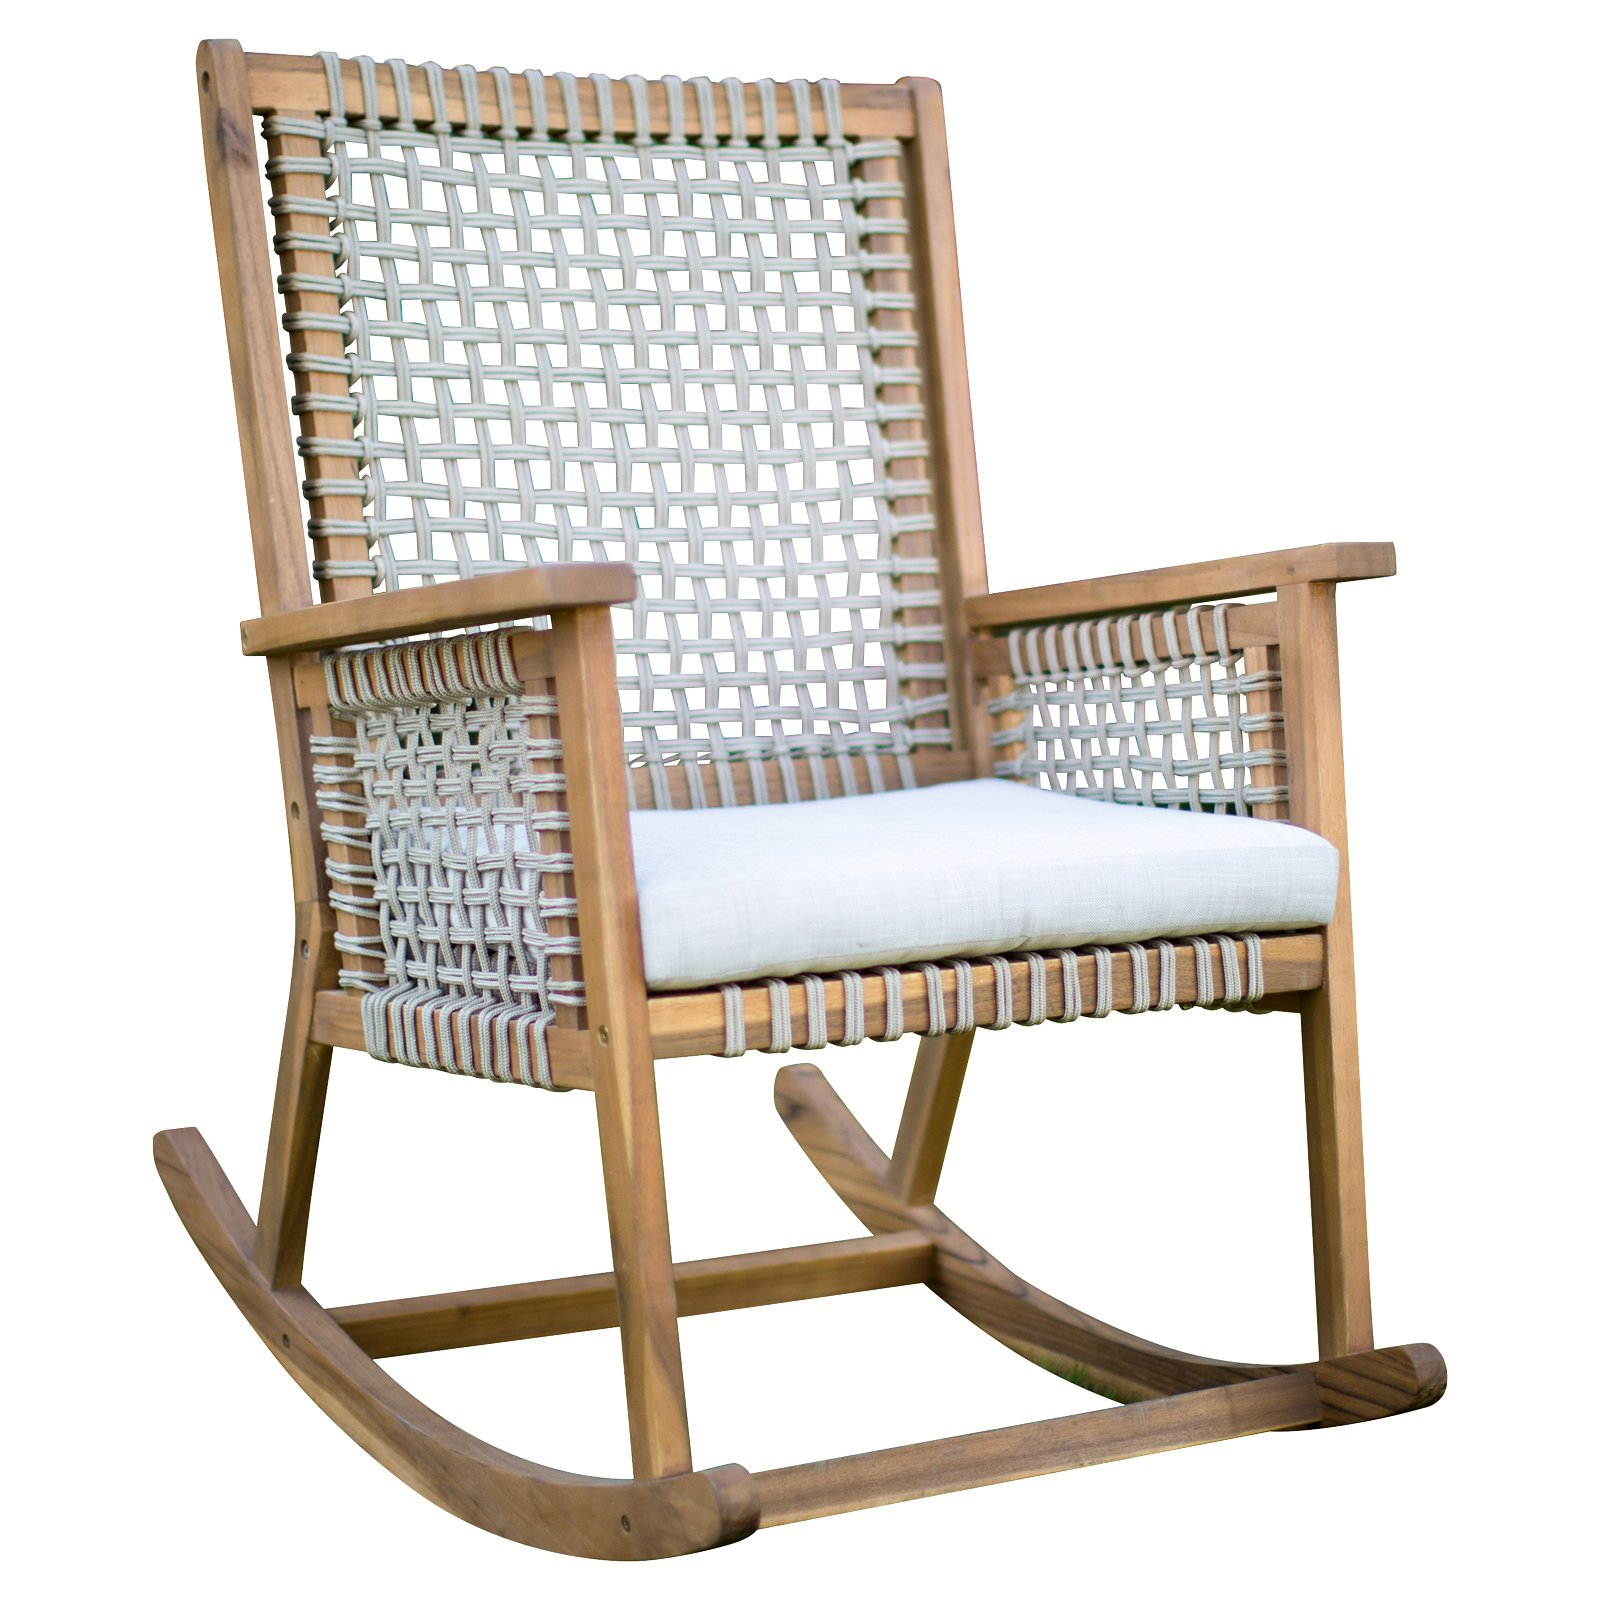 Belham Living Raeburn Rope and Wood Outdoor Rocking Chair